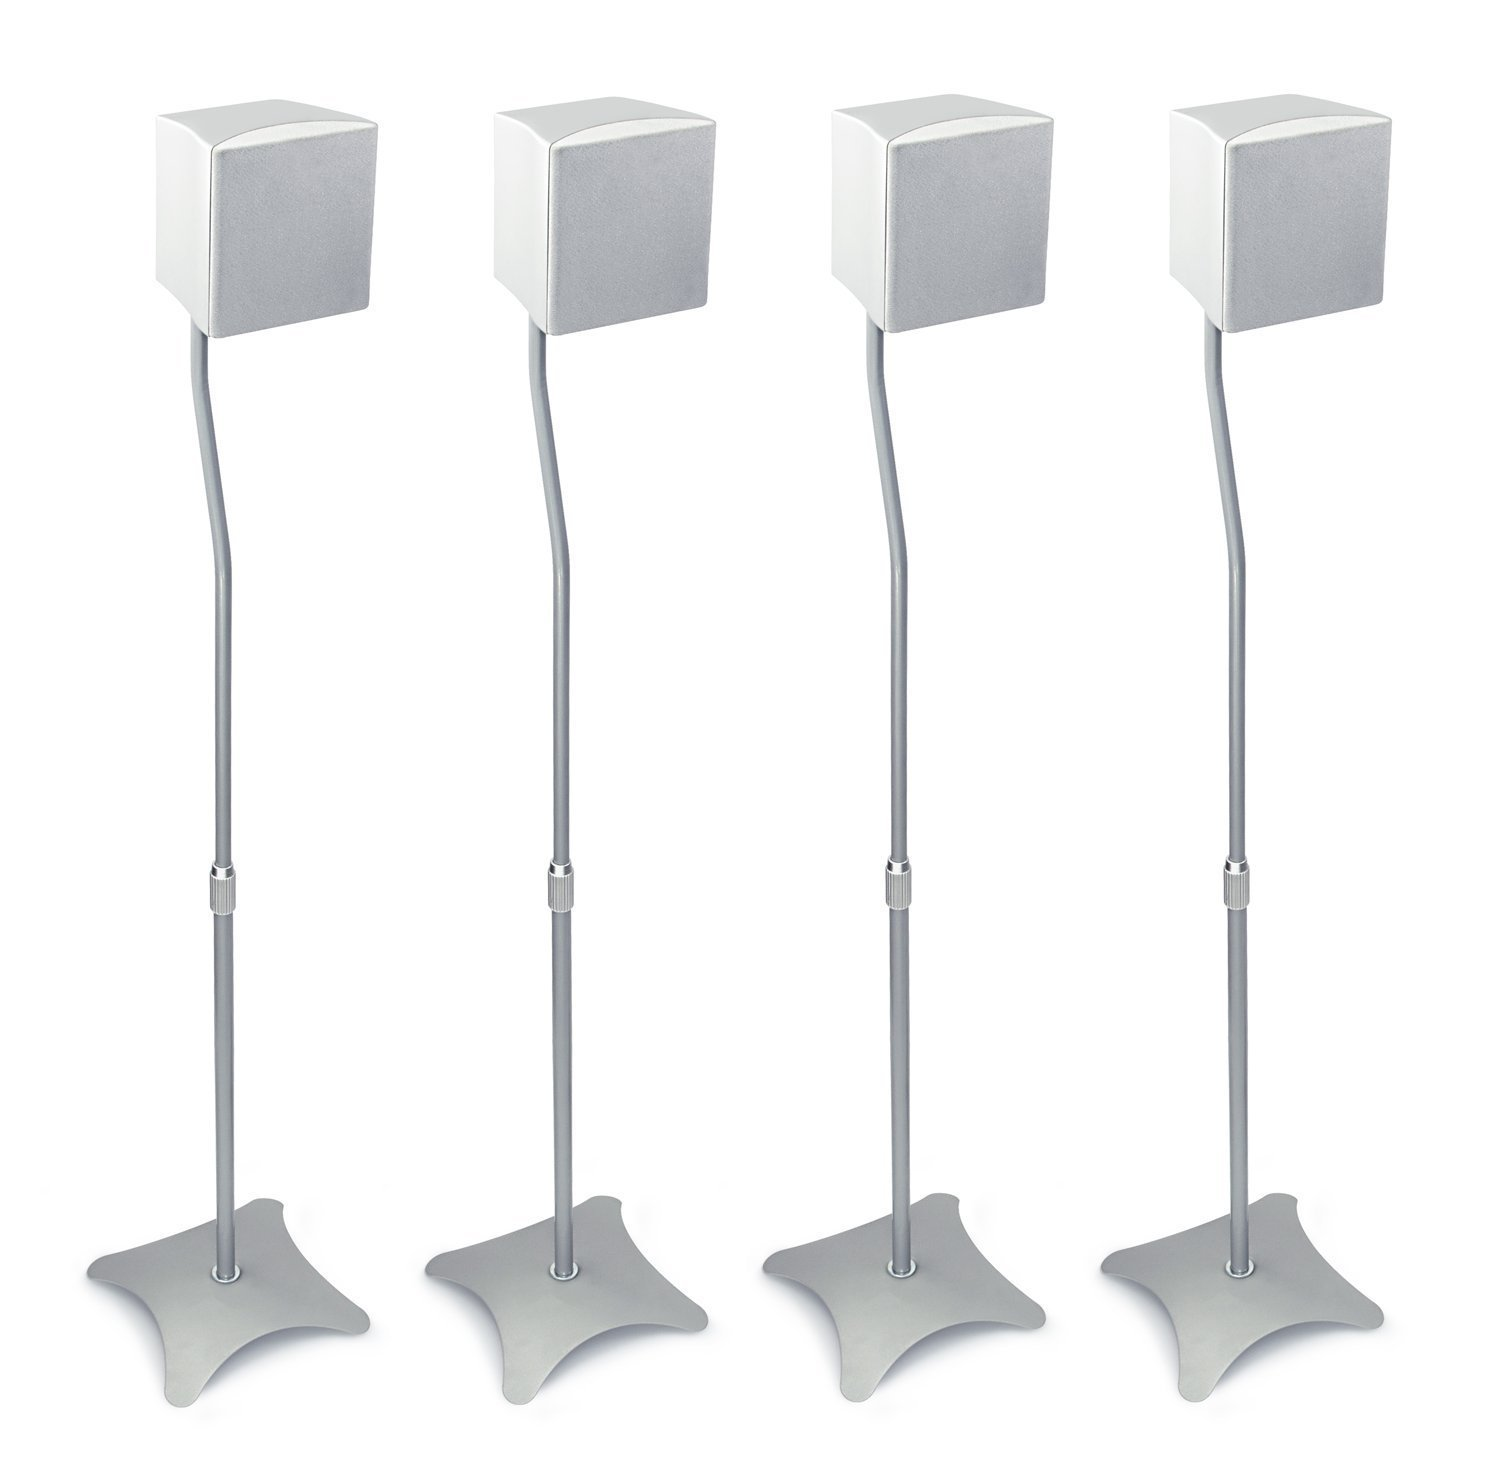 Mount-It! MI-1214S Speaker Stands for Home Theater 5.1 Channel Surround Sound System Satellite Speaker Stands Mounts, Rear and Front, 2 Pairs, 10 lb Capacity, Silver Moun-It! 4330169888